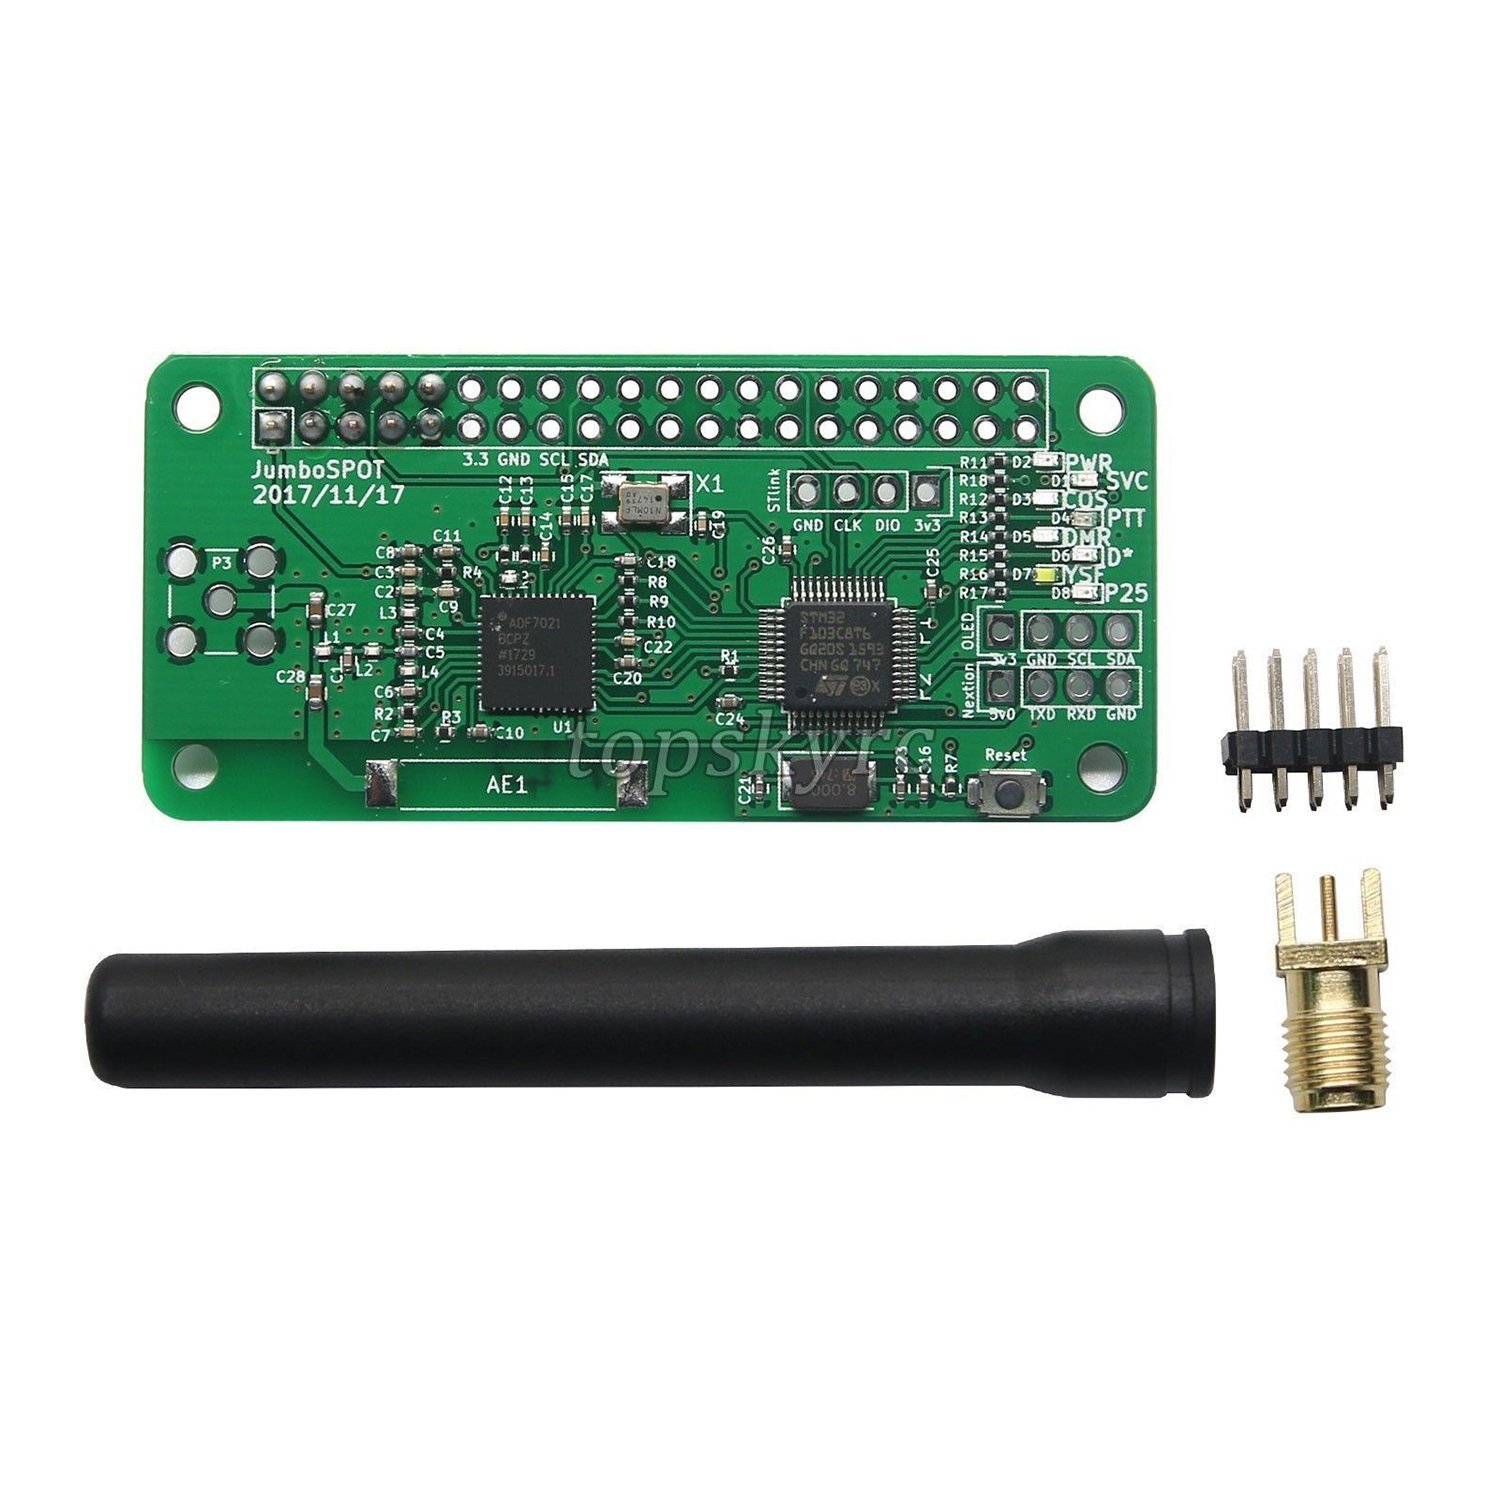 SODIAL MMDVM Hotspot Pi-Star Support P25 DMR YSF for raspberry pi + Antenna